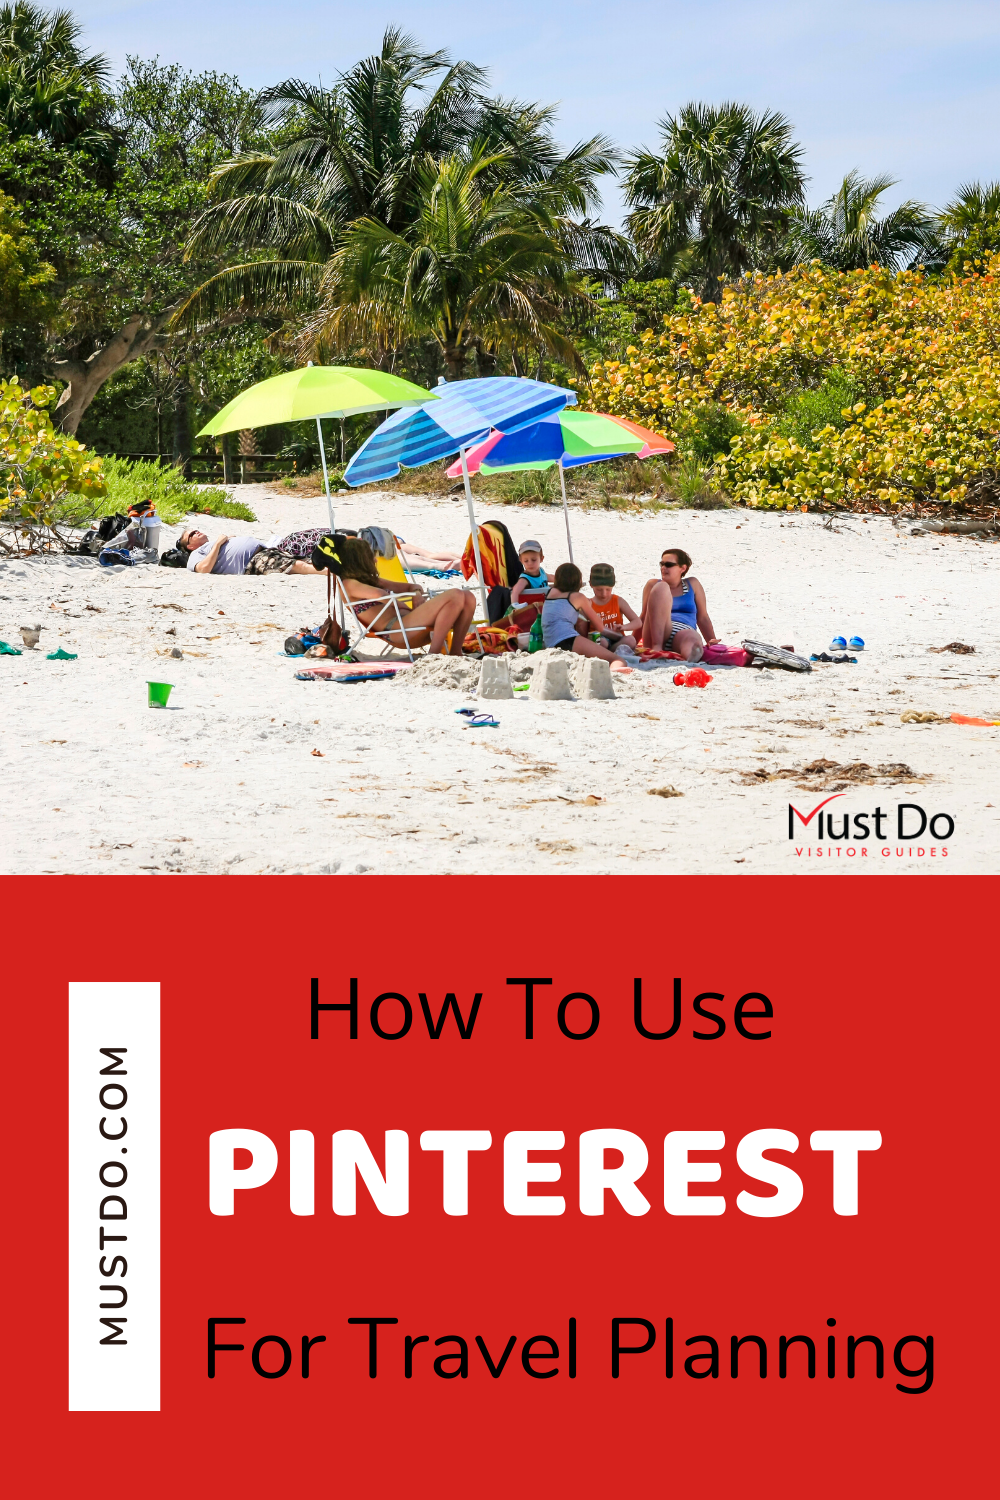 How to use Pinterest for travel planning. Must Do Visitor Guides | MustDo.com